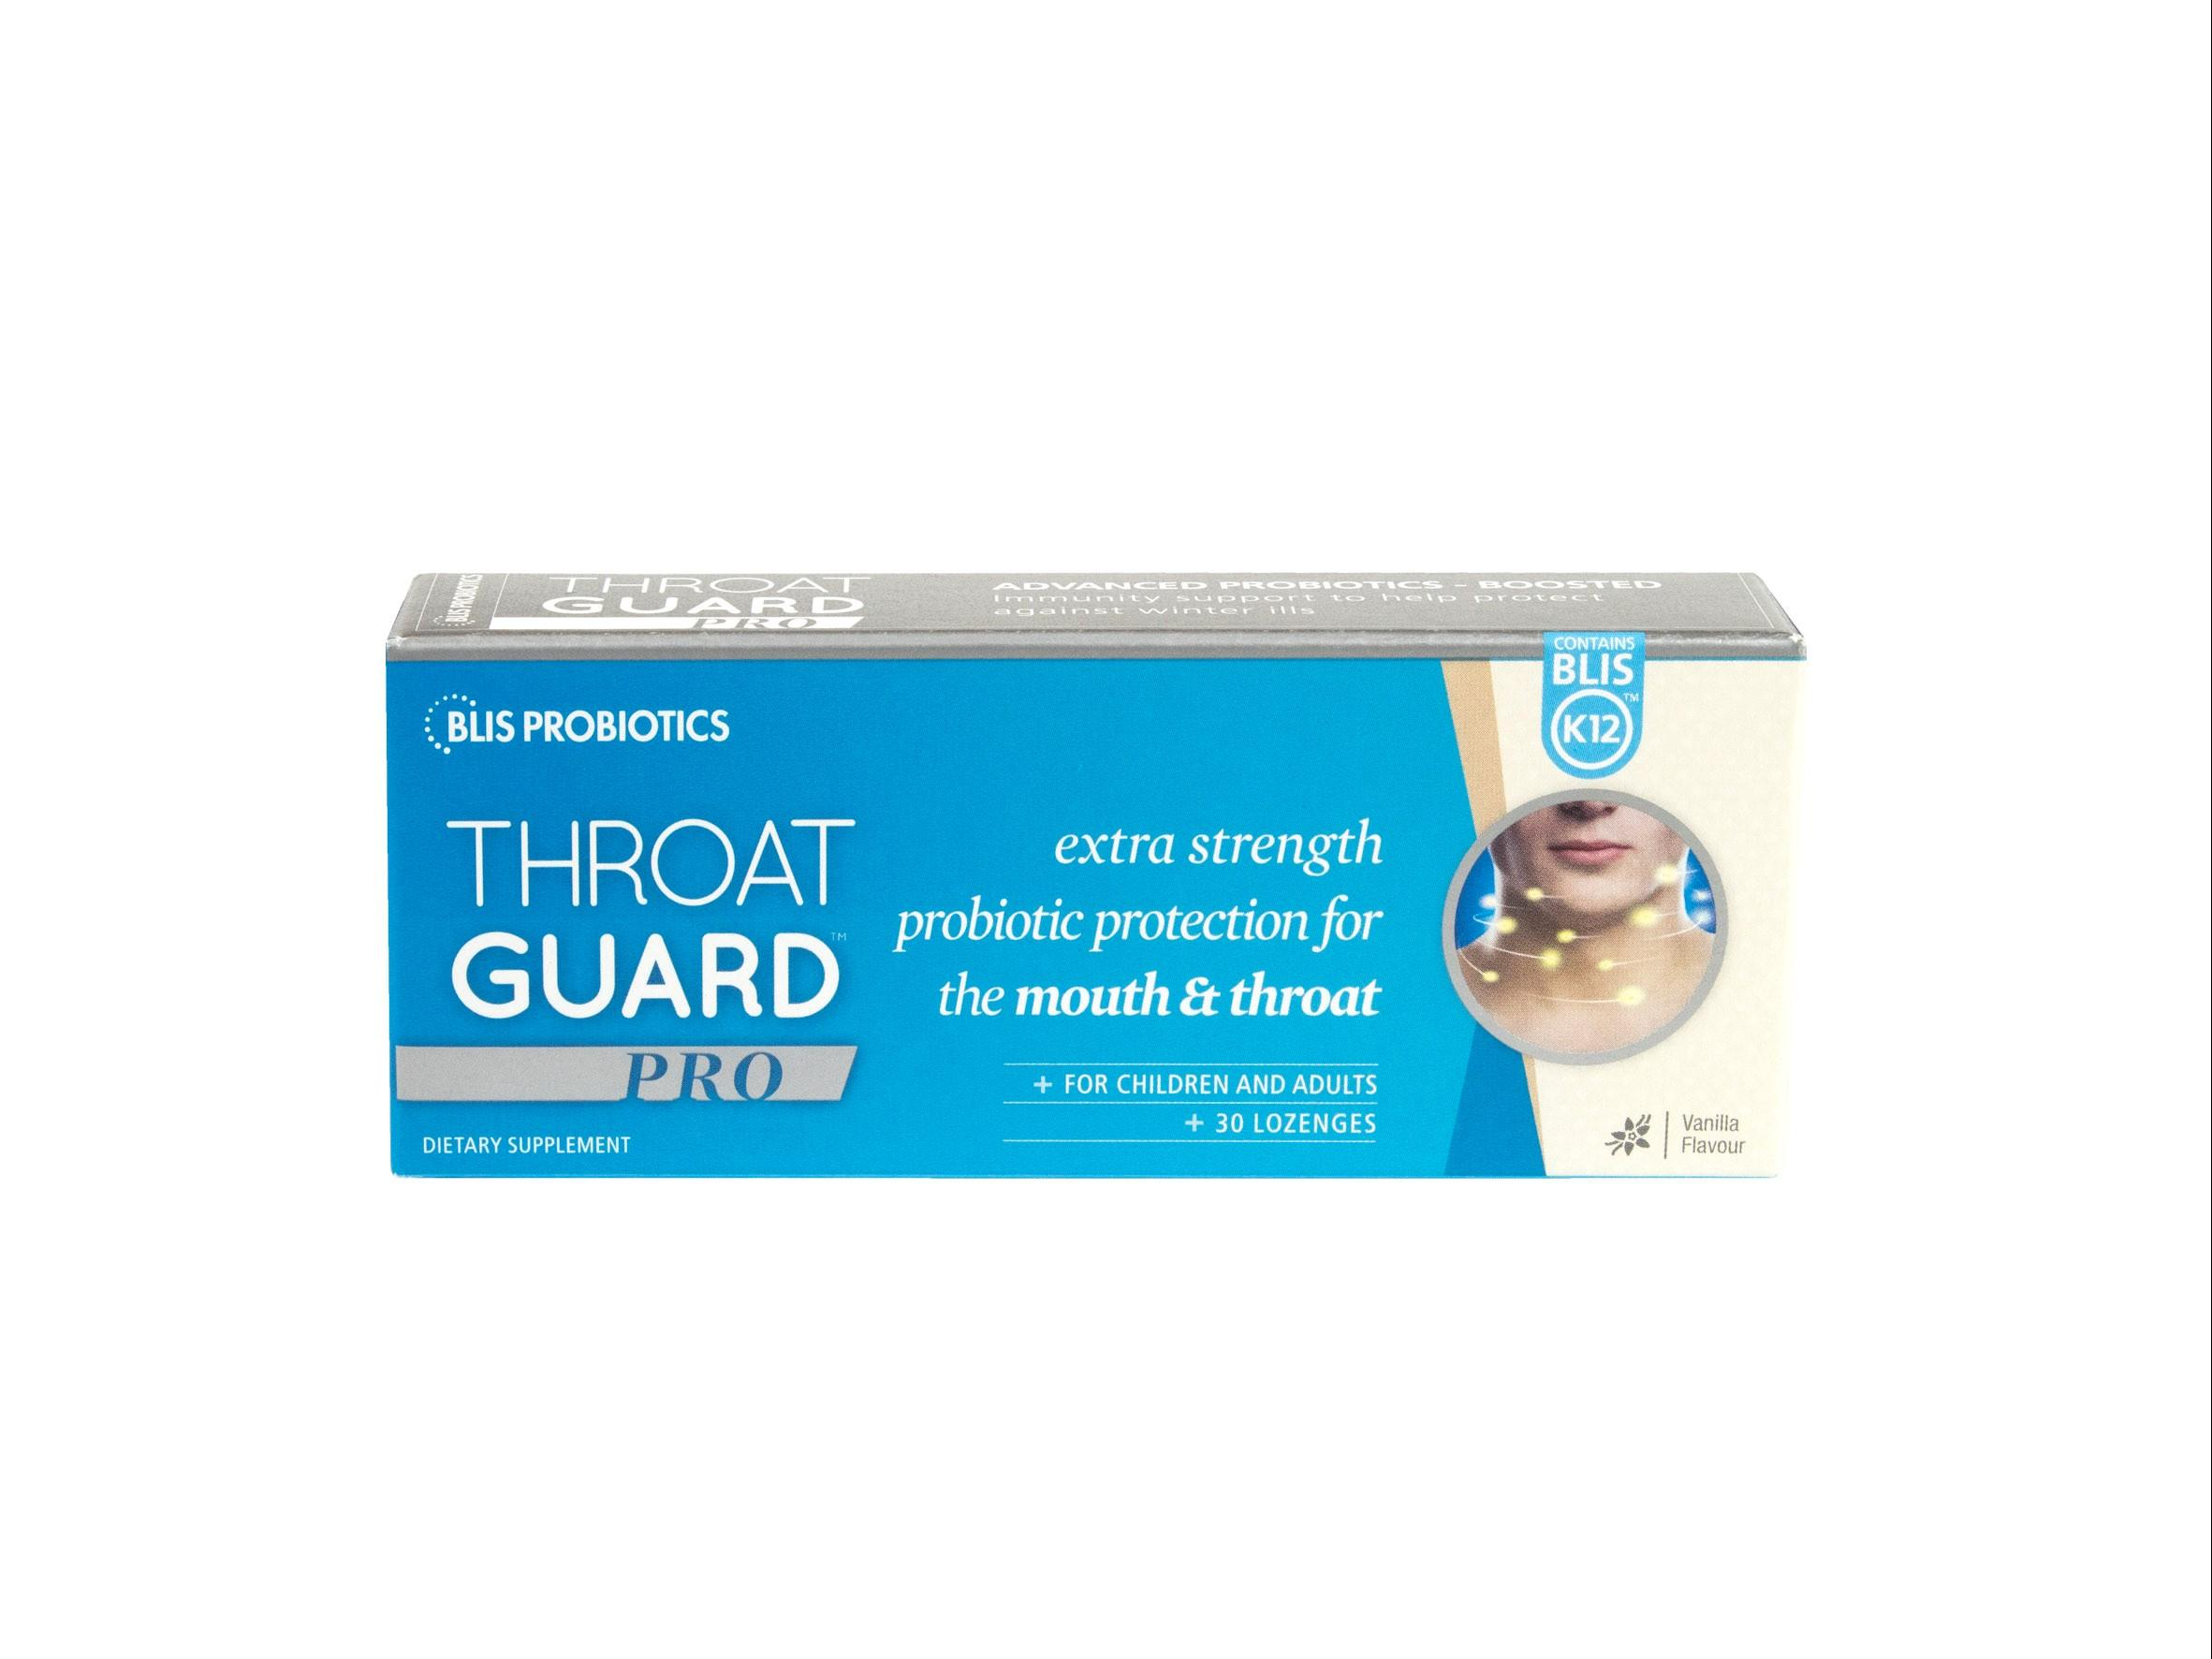 Throat guard box